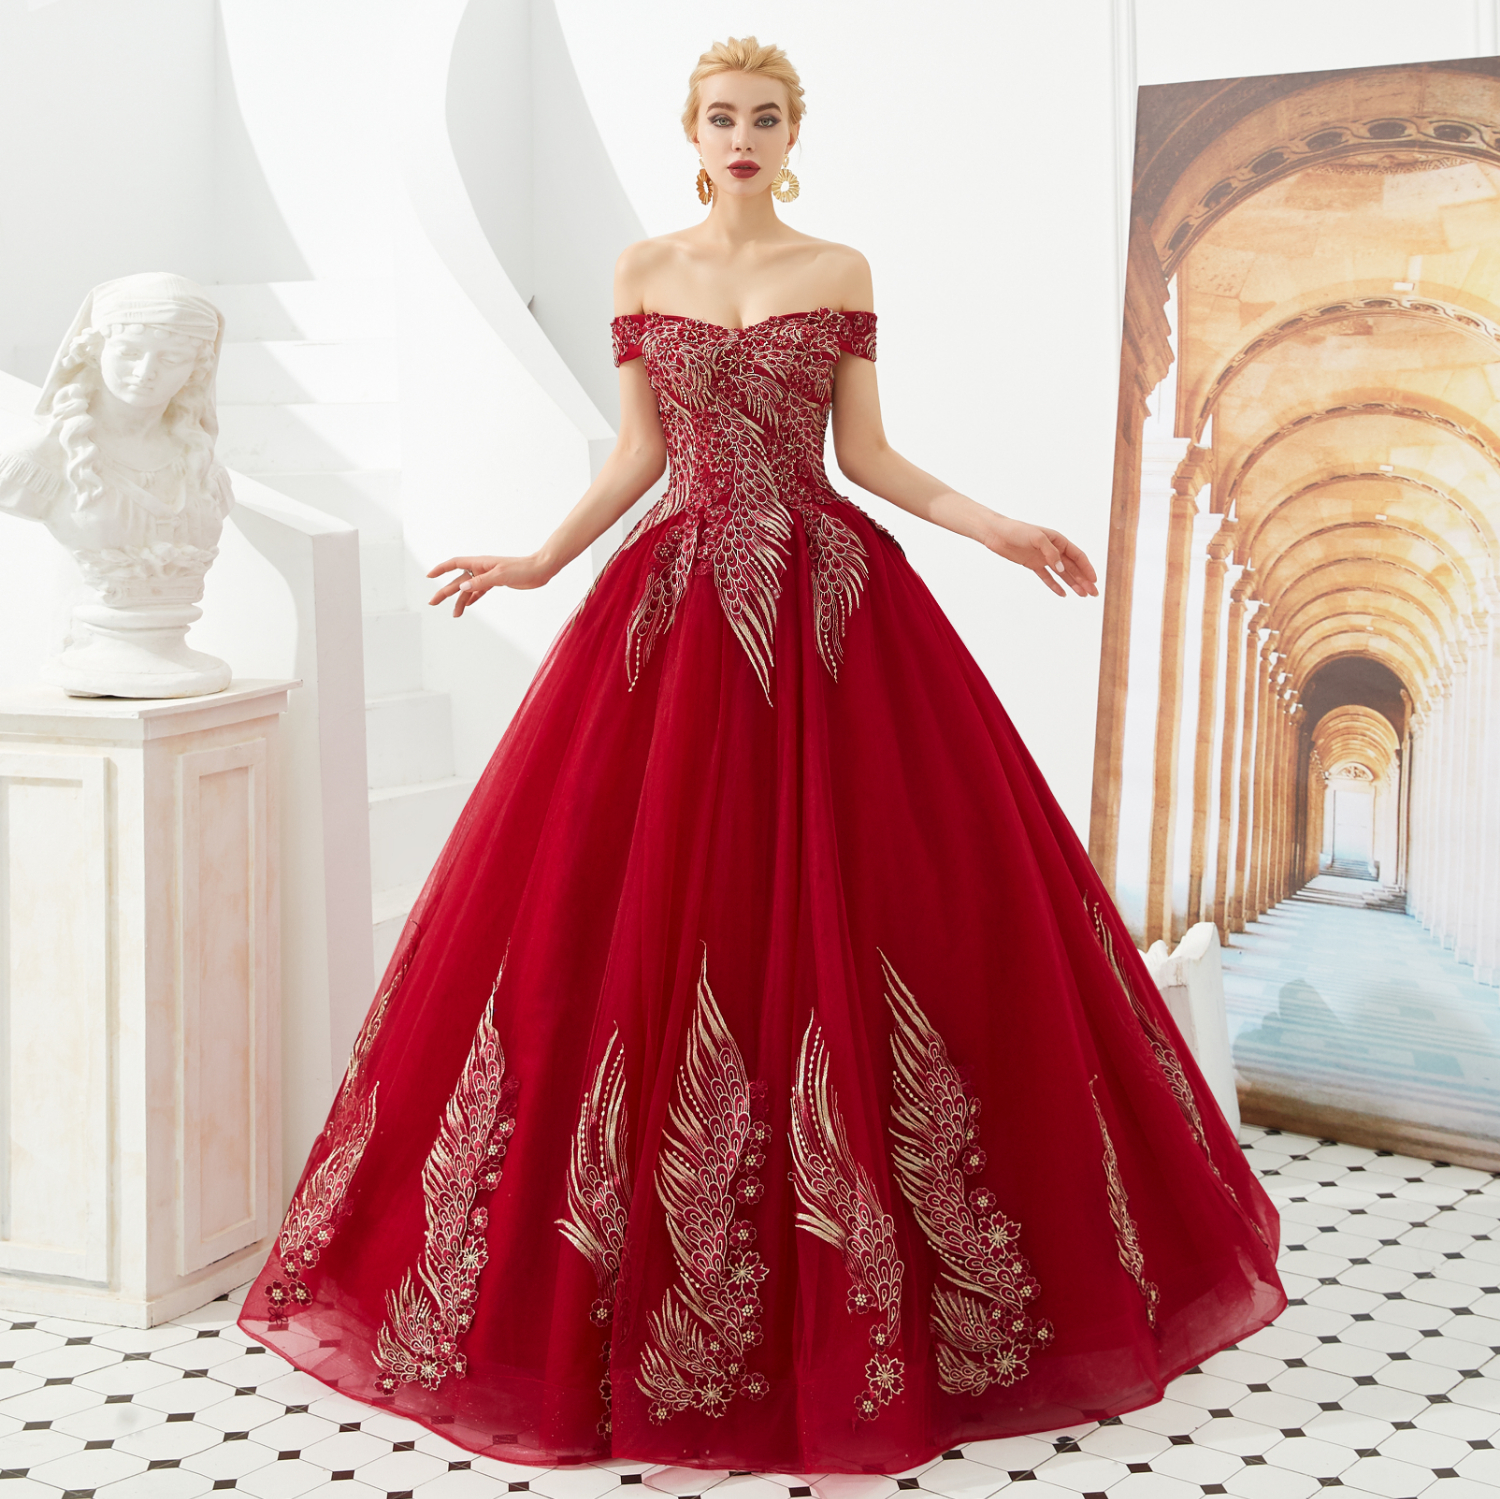 Wine Red Gold Lace Apppliques Quinceanera Dresses Sleeveless Ball Gown Formal Party Long Prom Gowns Vestidos De Fiesta De Noche